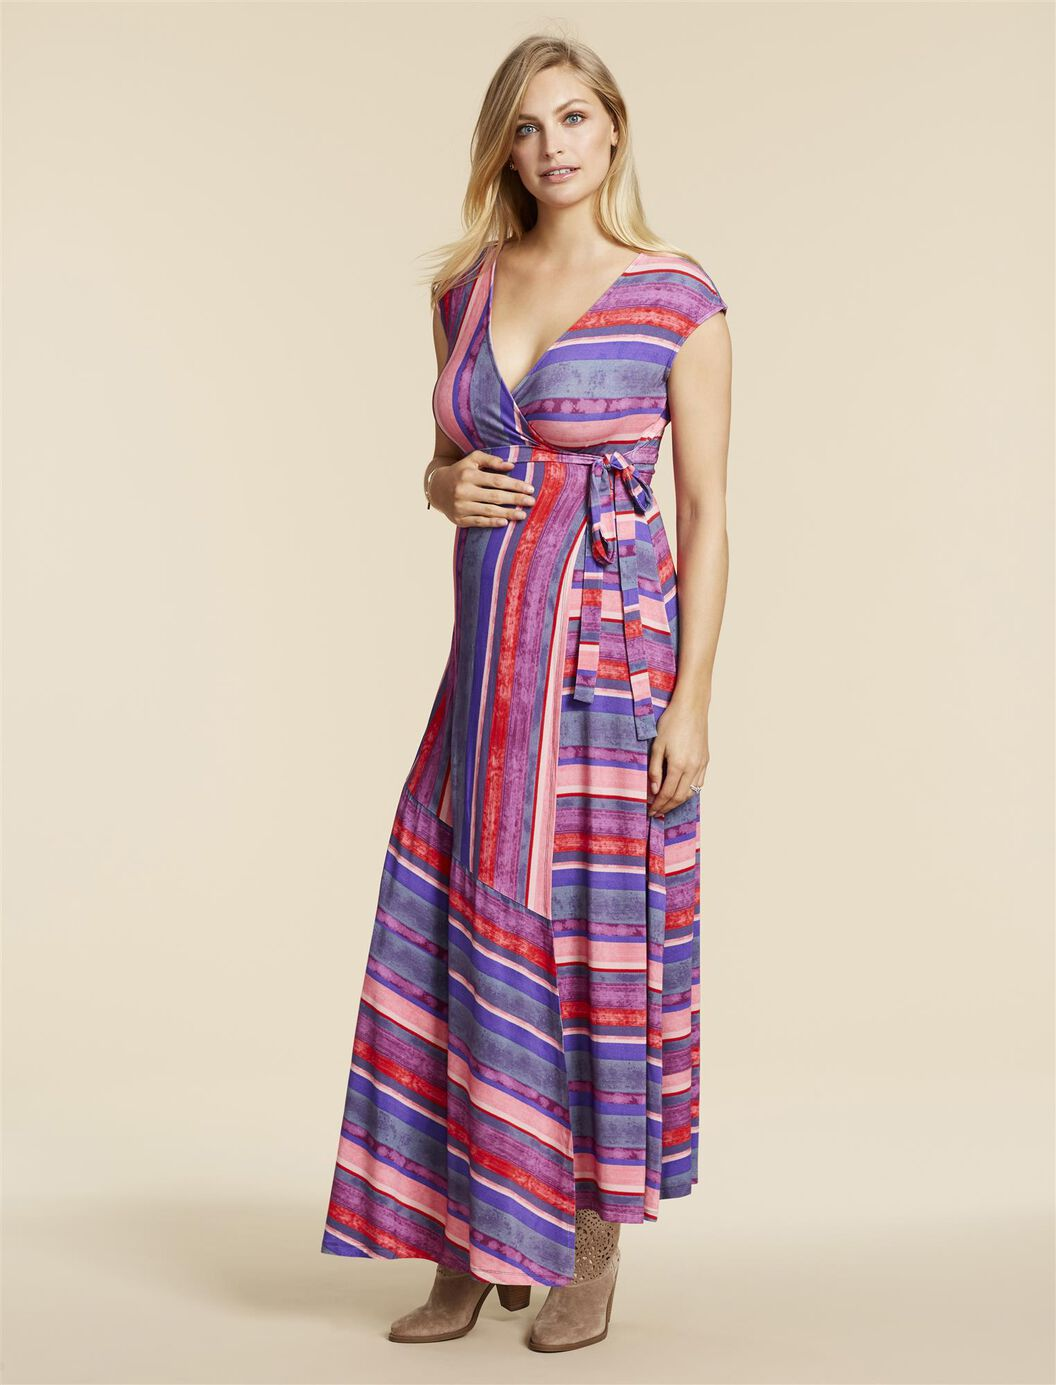 Jessica Simpson Maternity Dress at Motherhood Maternity in Victor, NY | Tuggl